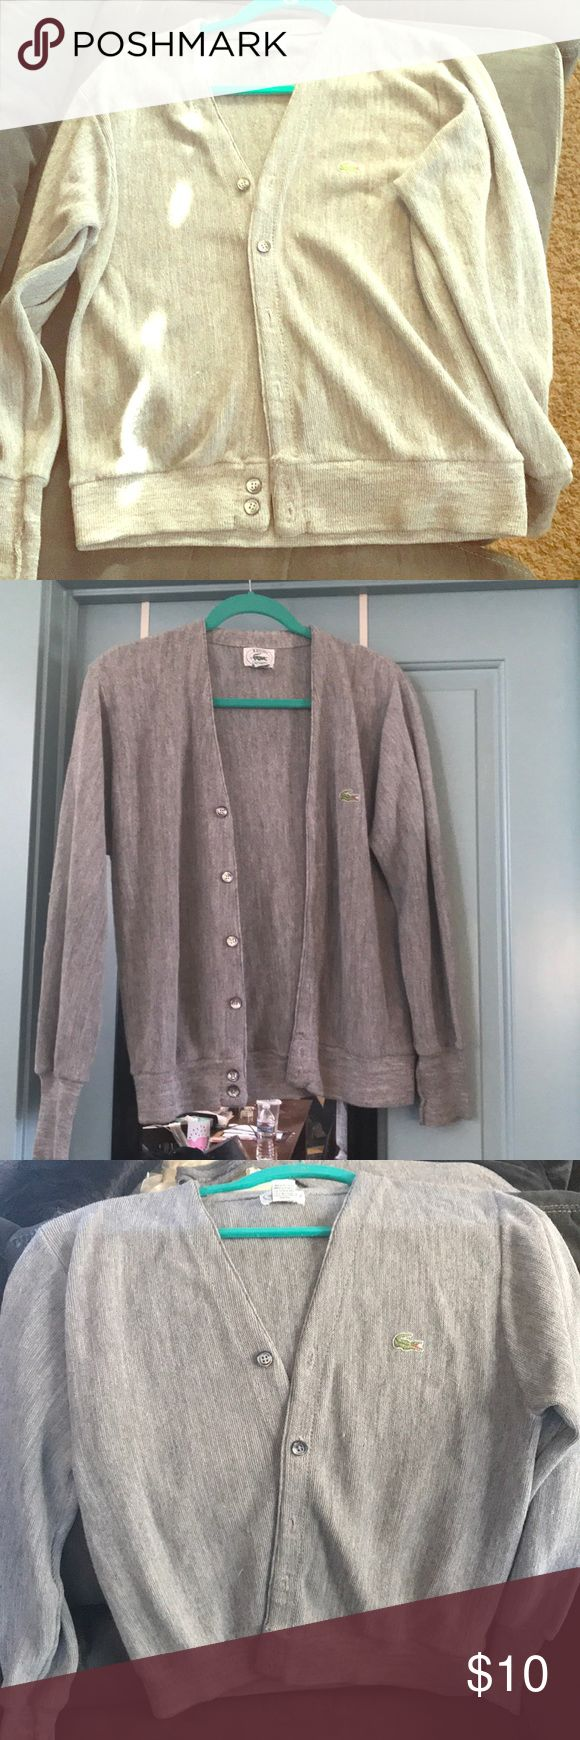 Izod Lacoste Cardigan🐊 Super cute vintage Izod/ Lacoste women's Cardigan sweater. Grey color goes with so much! It even has iridescent buttons. Perfect addition to a preppy look. Size Small. Has a couple of very small snag see picture but hardly noticeable. Lacoste Sweaters Cardigans